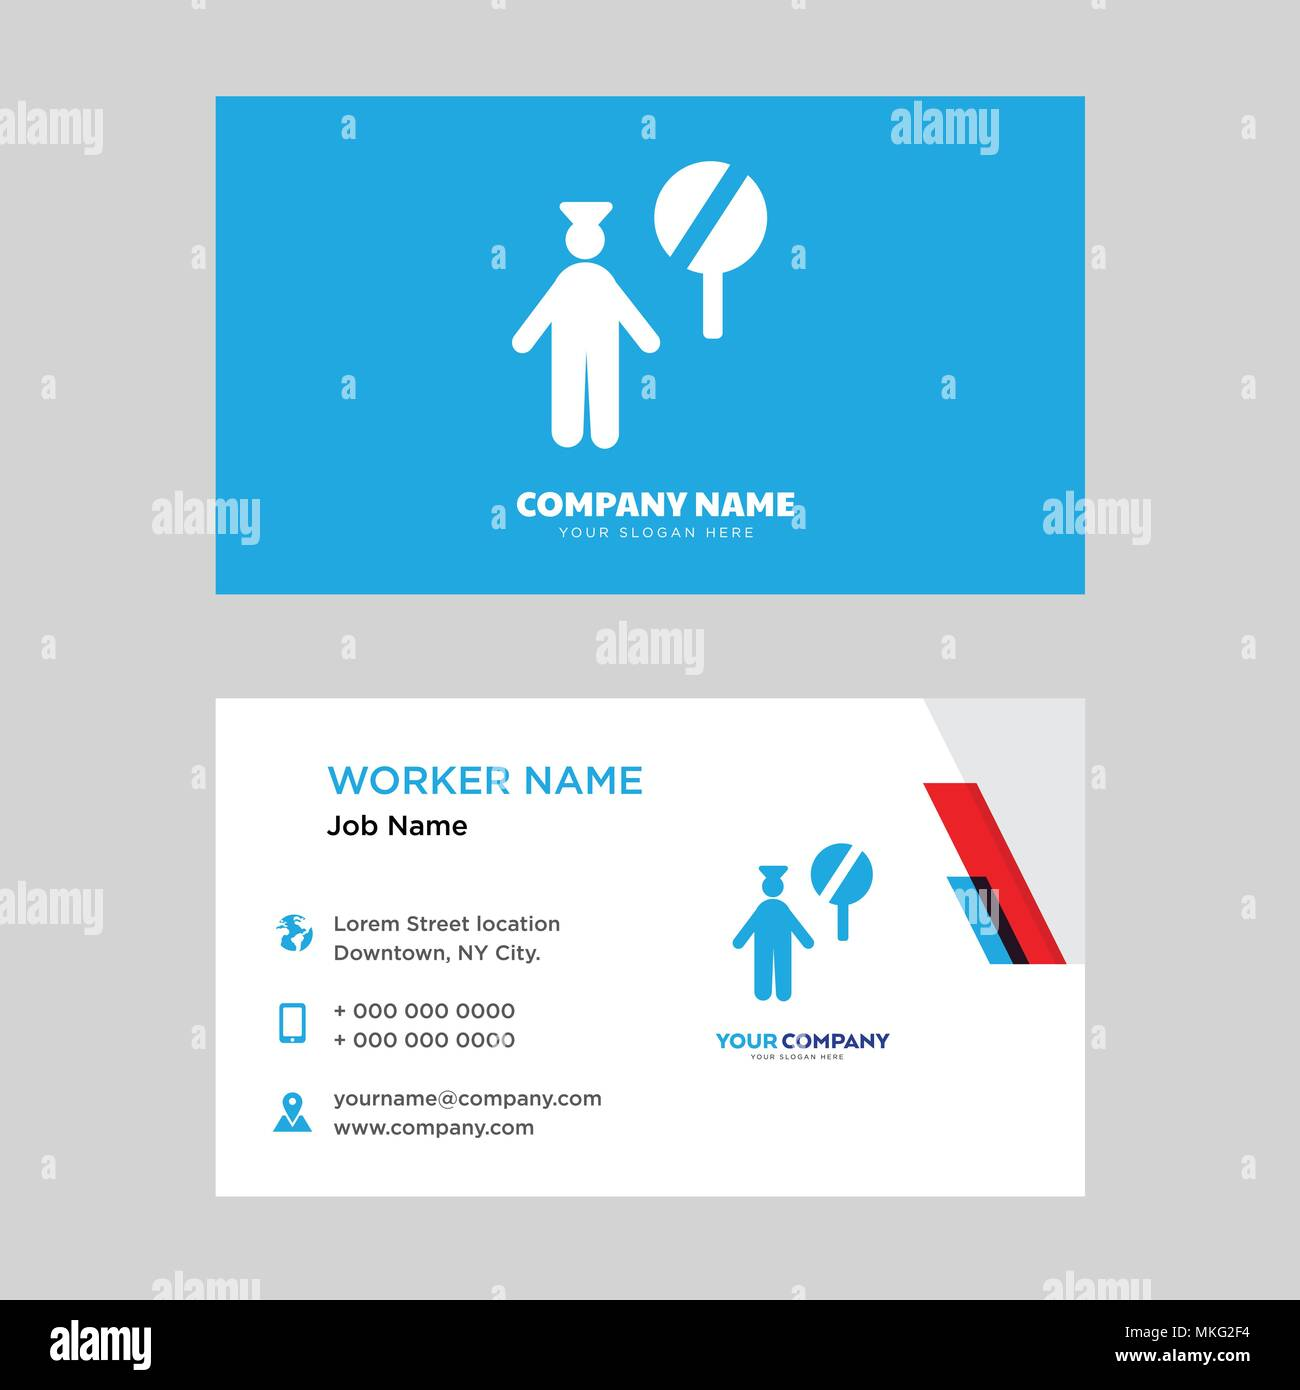 Police business card design template, Visiting for your company ...